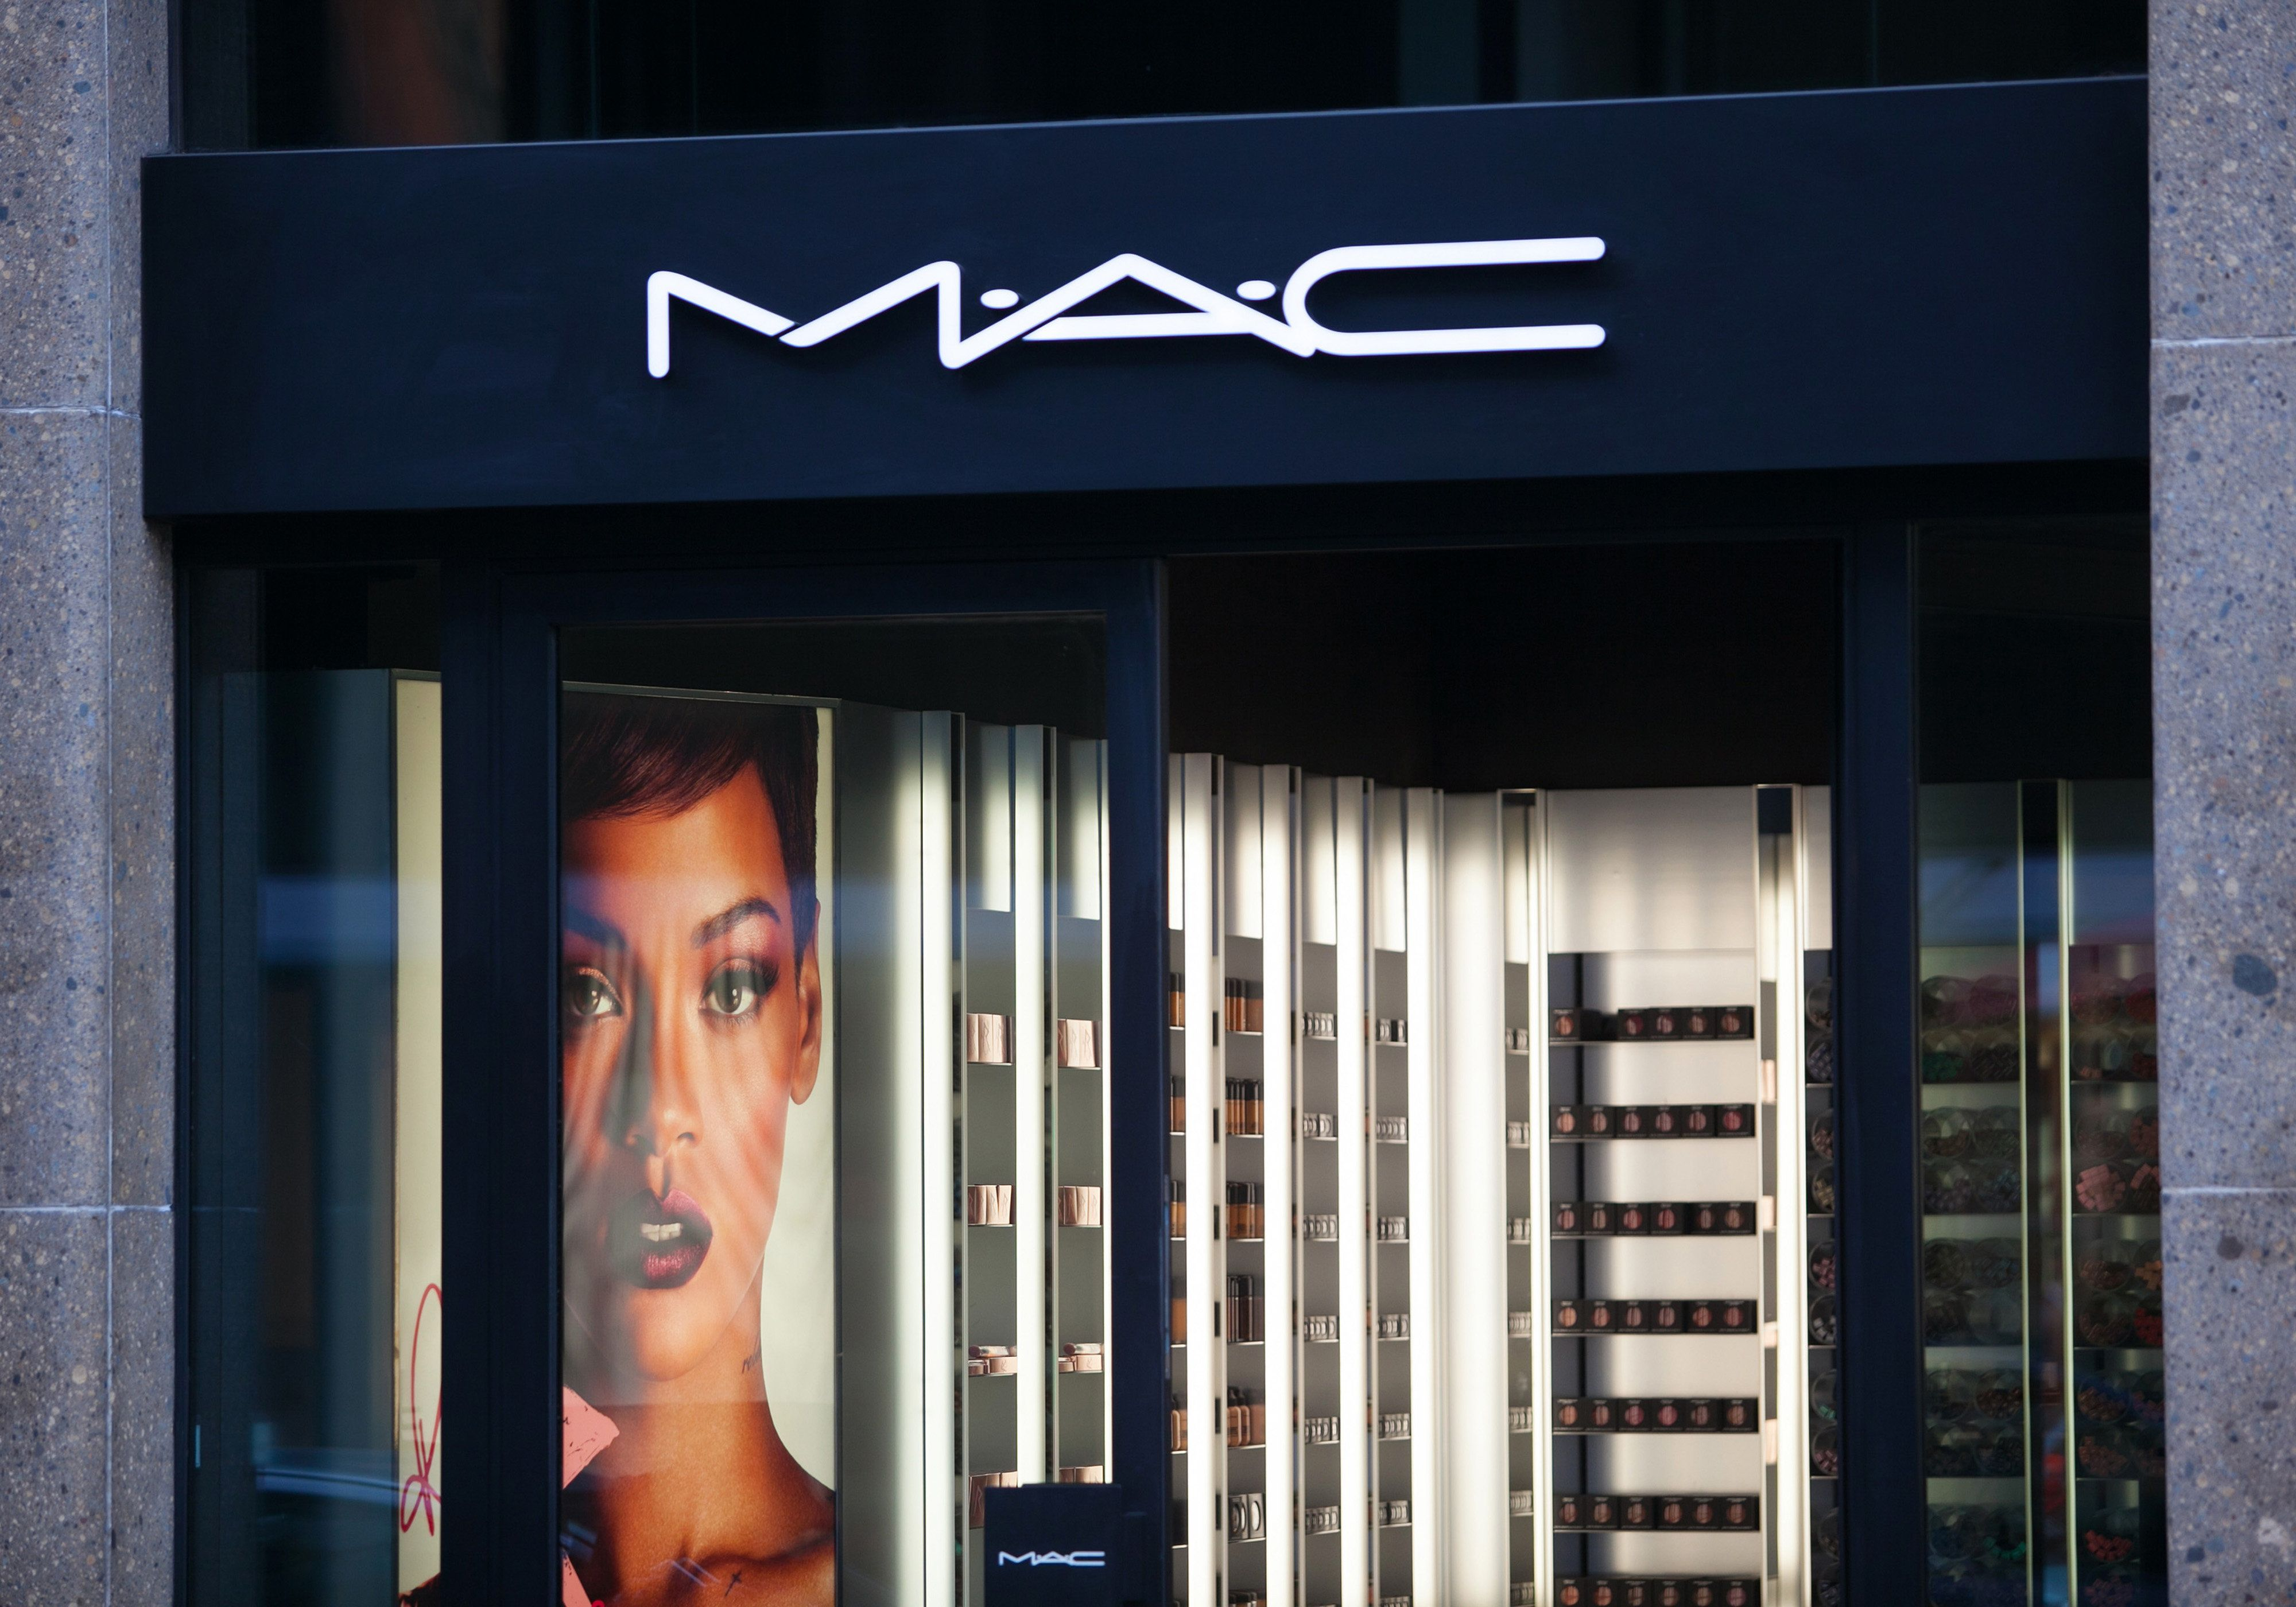 A logo sits above the entrance to a M.A.C Cosmetics Inc. store, operated by Estee Lauder Cos., in Dusseldorf, Germany, on Tuesday, Oct. 1, 2013. The Bundesbank said last month that German growth is still being supported by an 'extraordinarily good' consumer climate, in part due to the labor market. Photographer: Krisztian Bocsi/Bloomberg via Getty Images